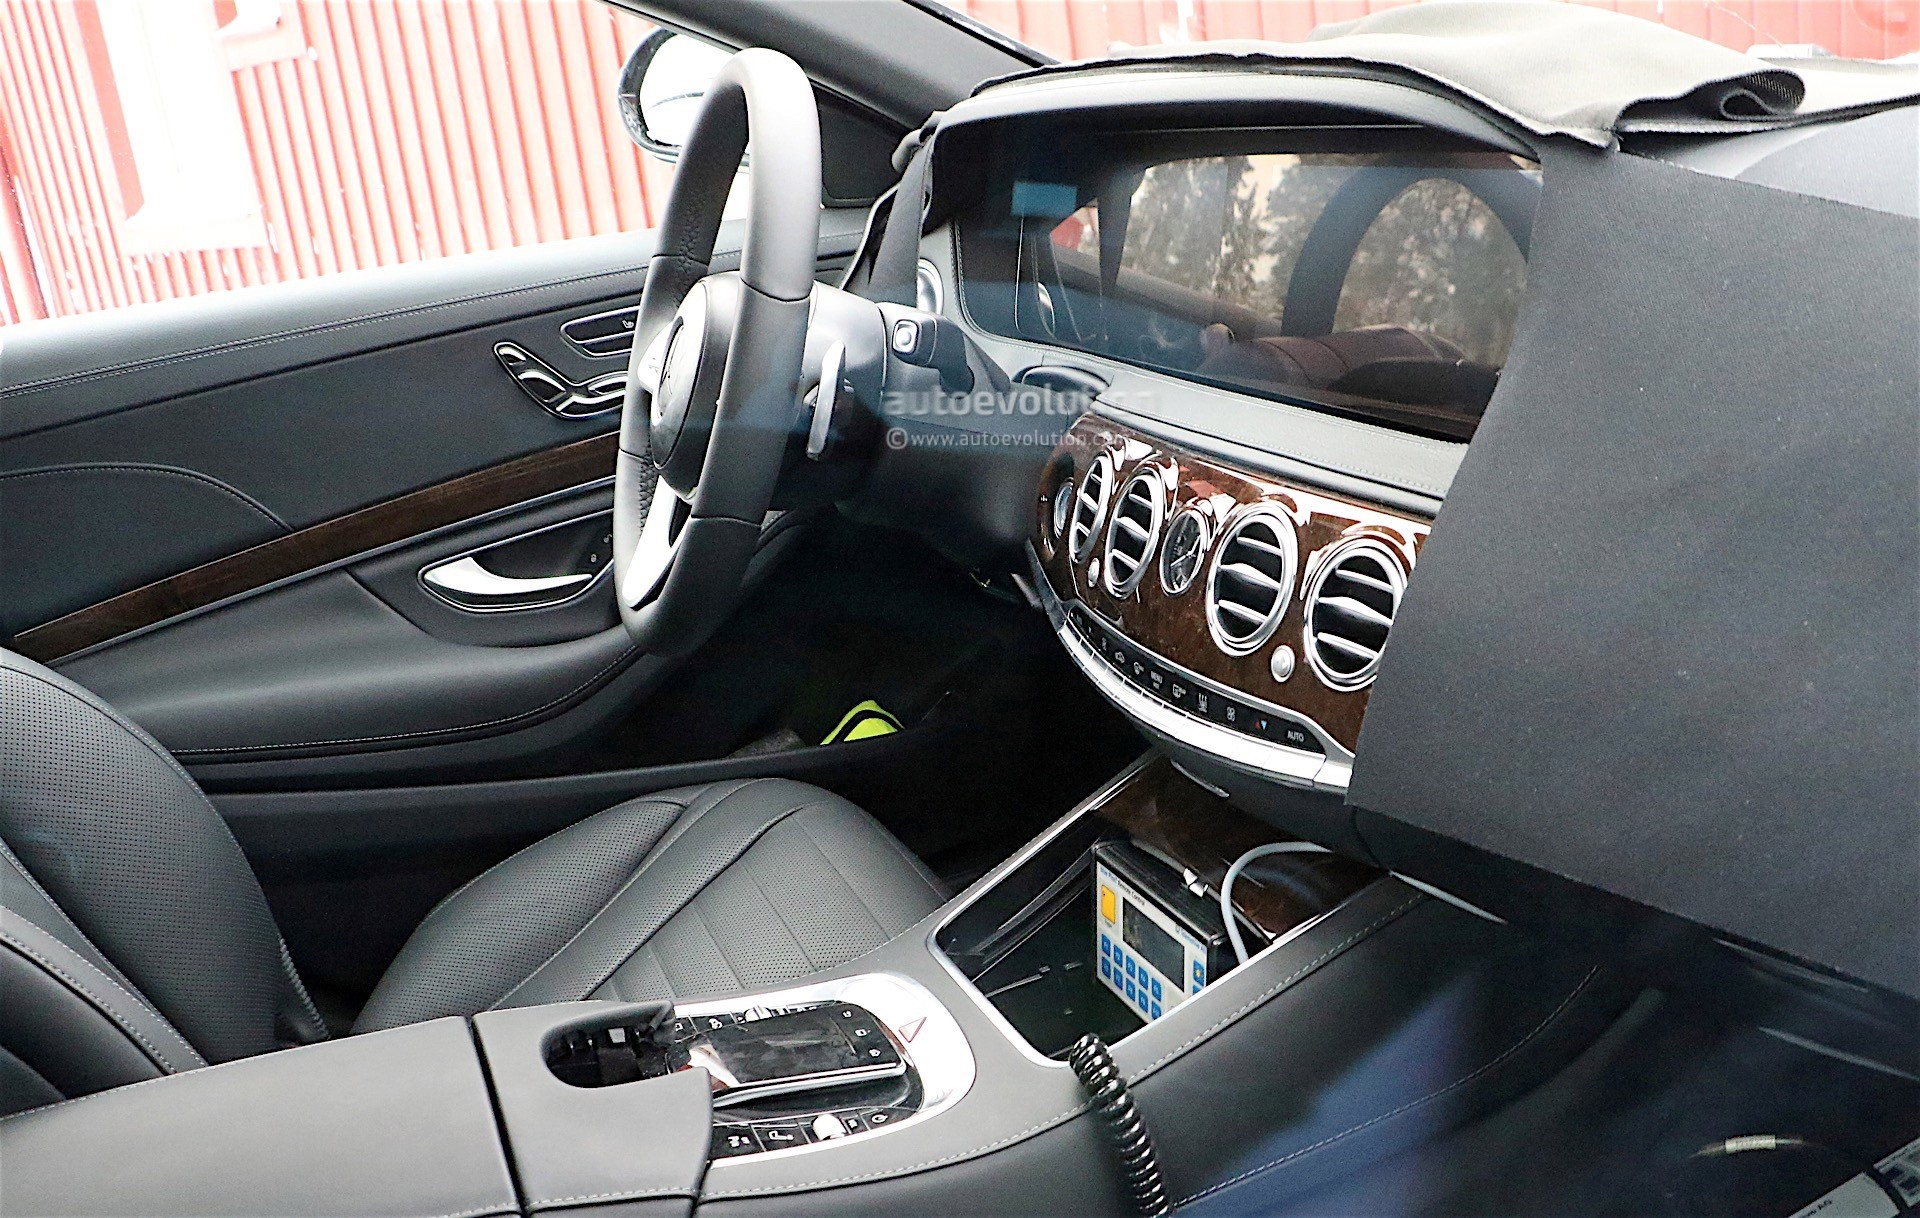 2018 mercedes benz s class facelift spyshots reveal new for New interior